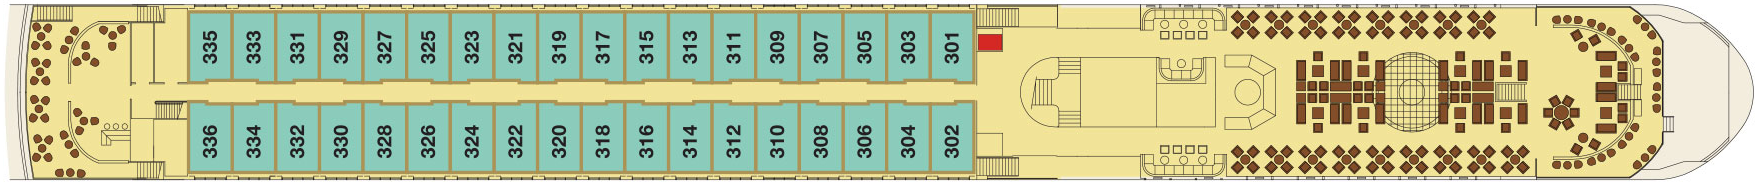 The River Cruise Line MS Serenity Deck Plans Panorama Deck.png